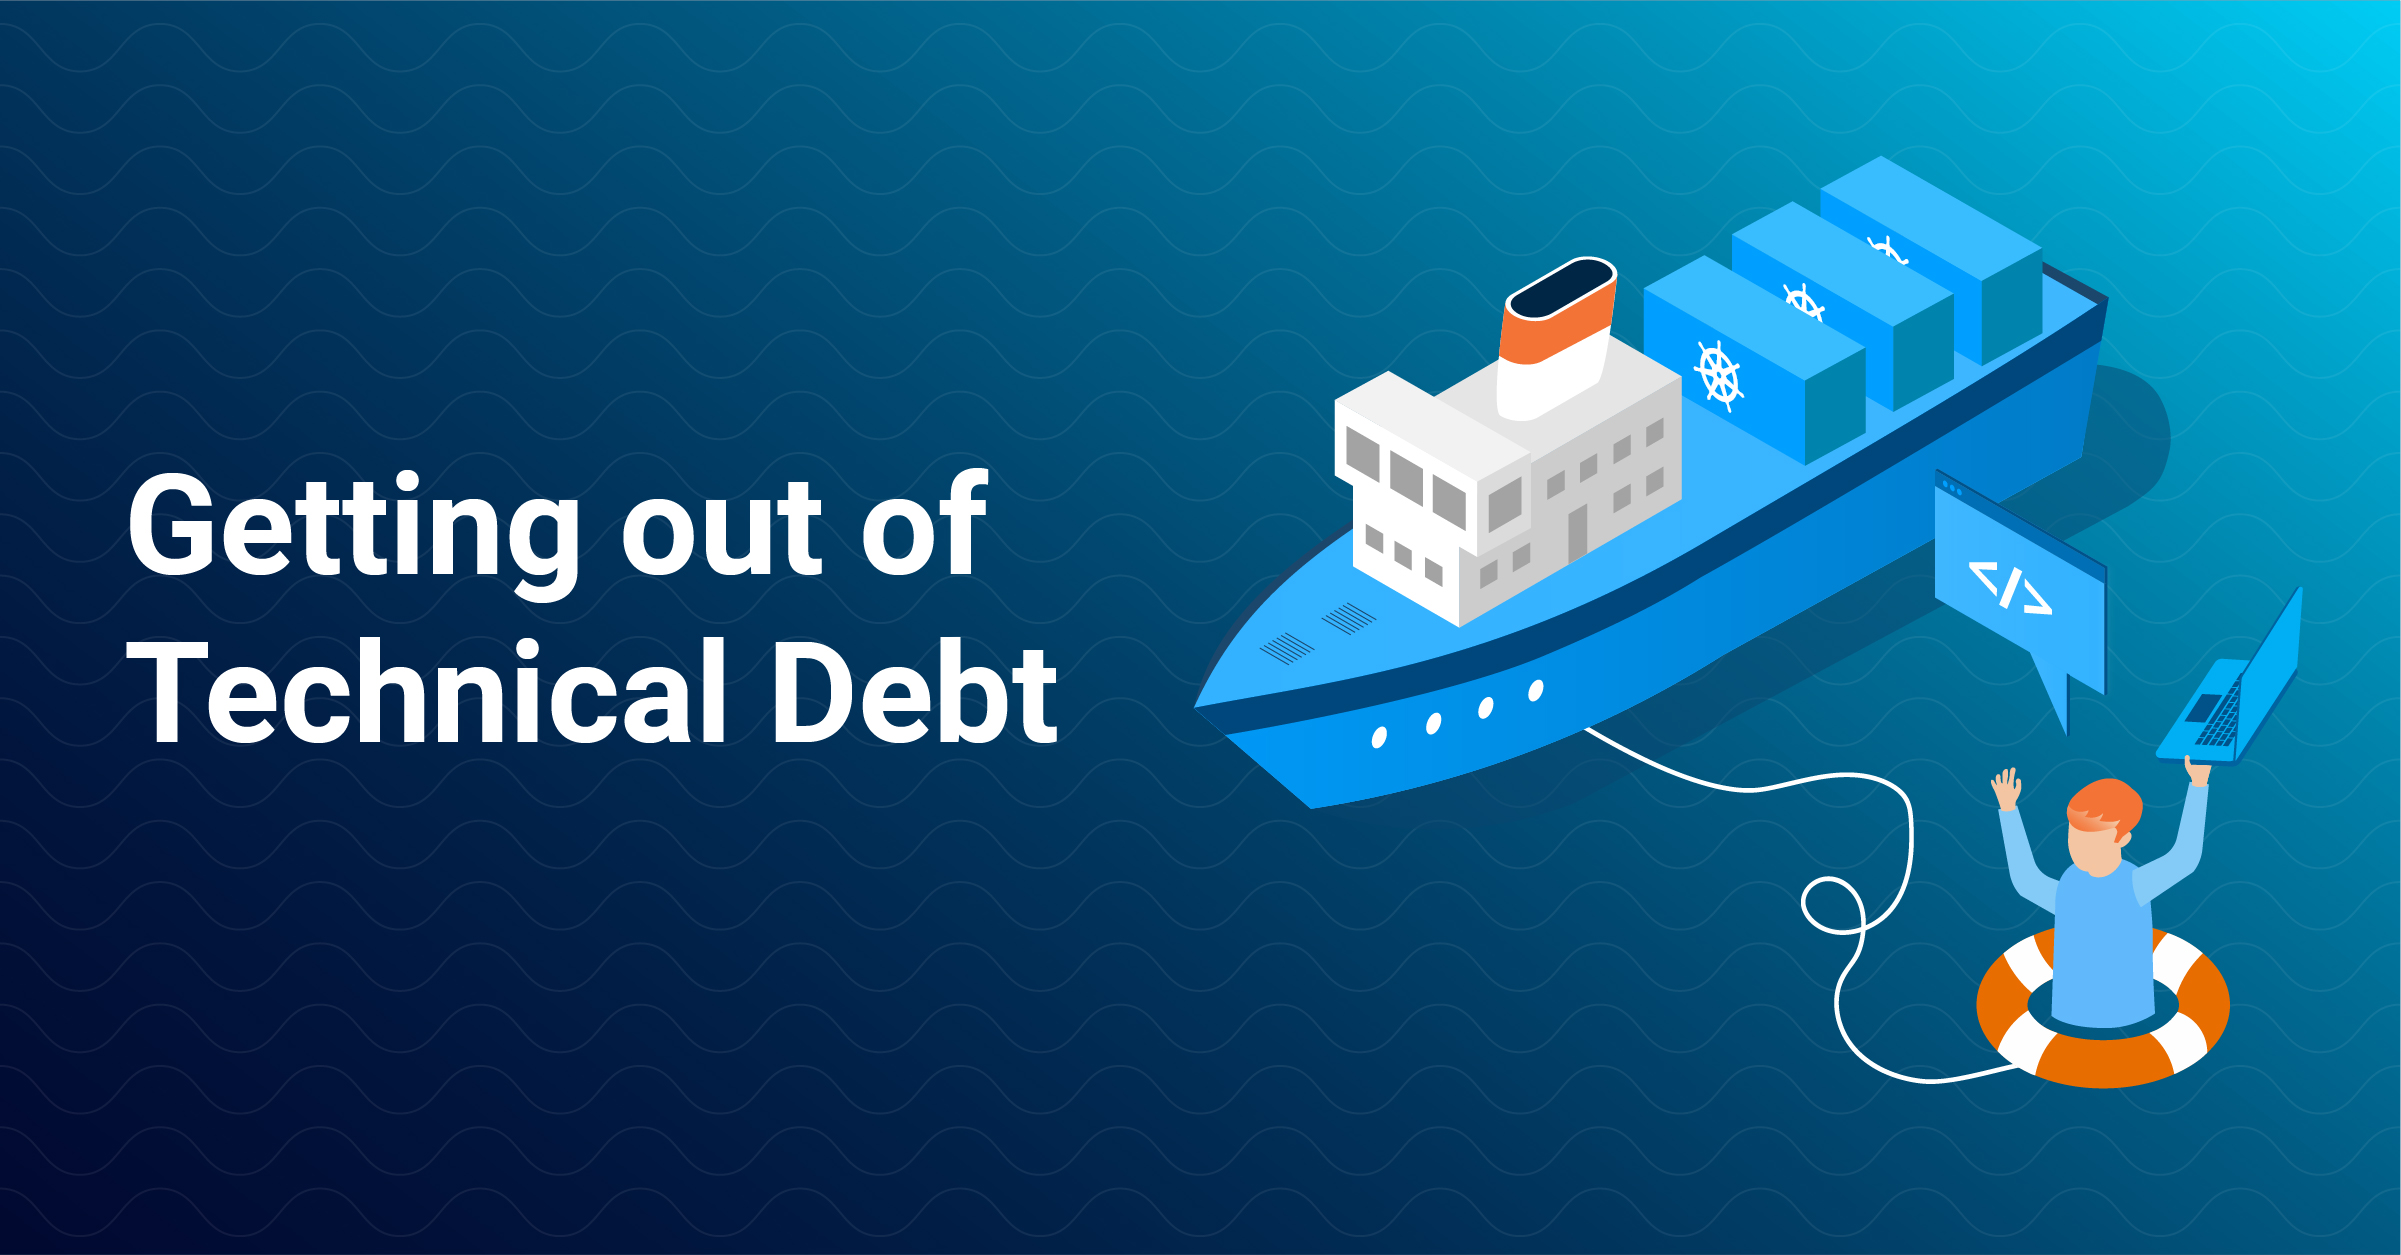 Getting out of technical debt image thumbnail